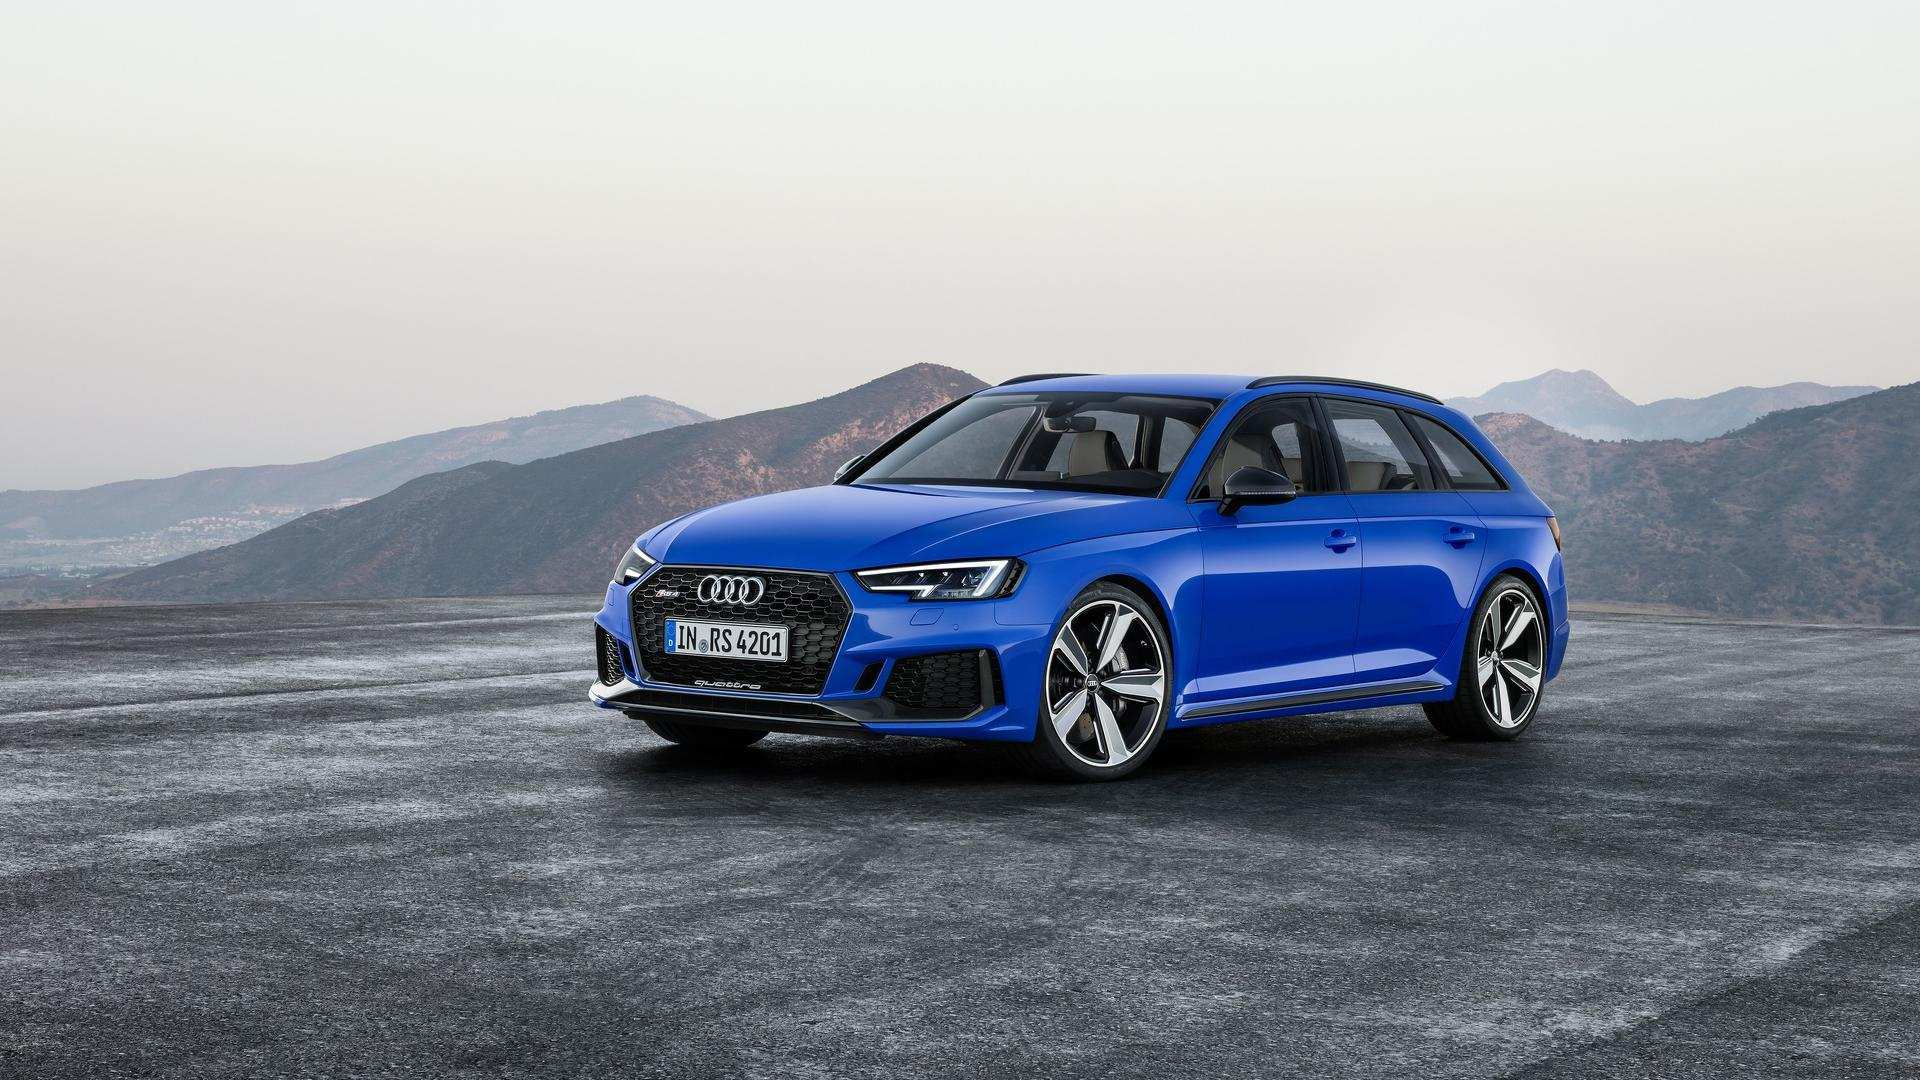 40 Gallery of Audi Rs4 2020 Specs and Review for Audi Rs4 2020